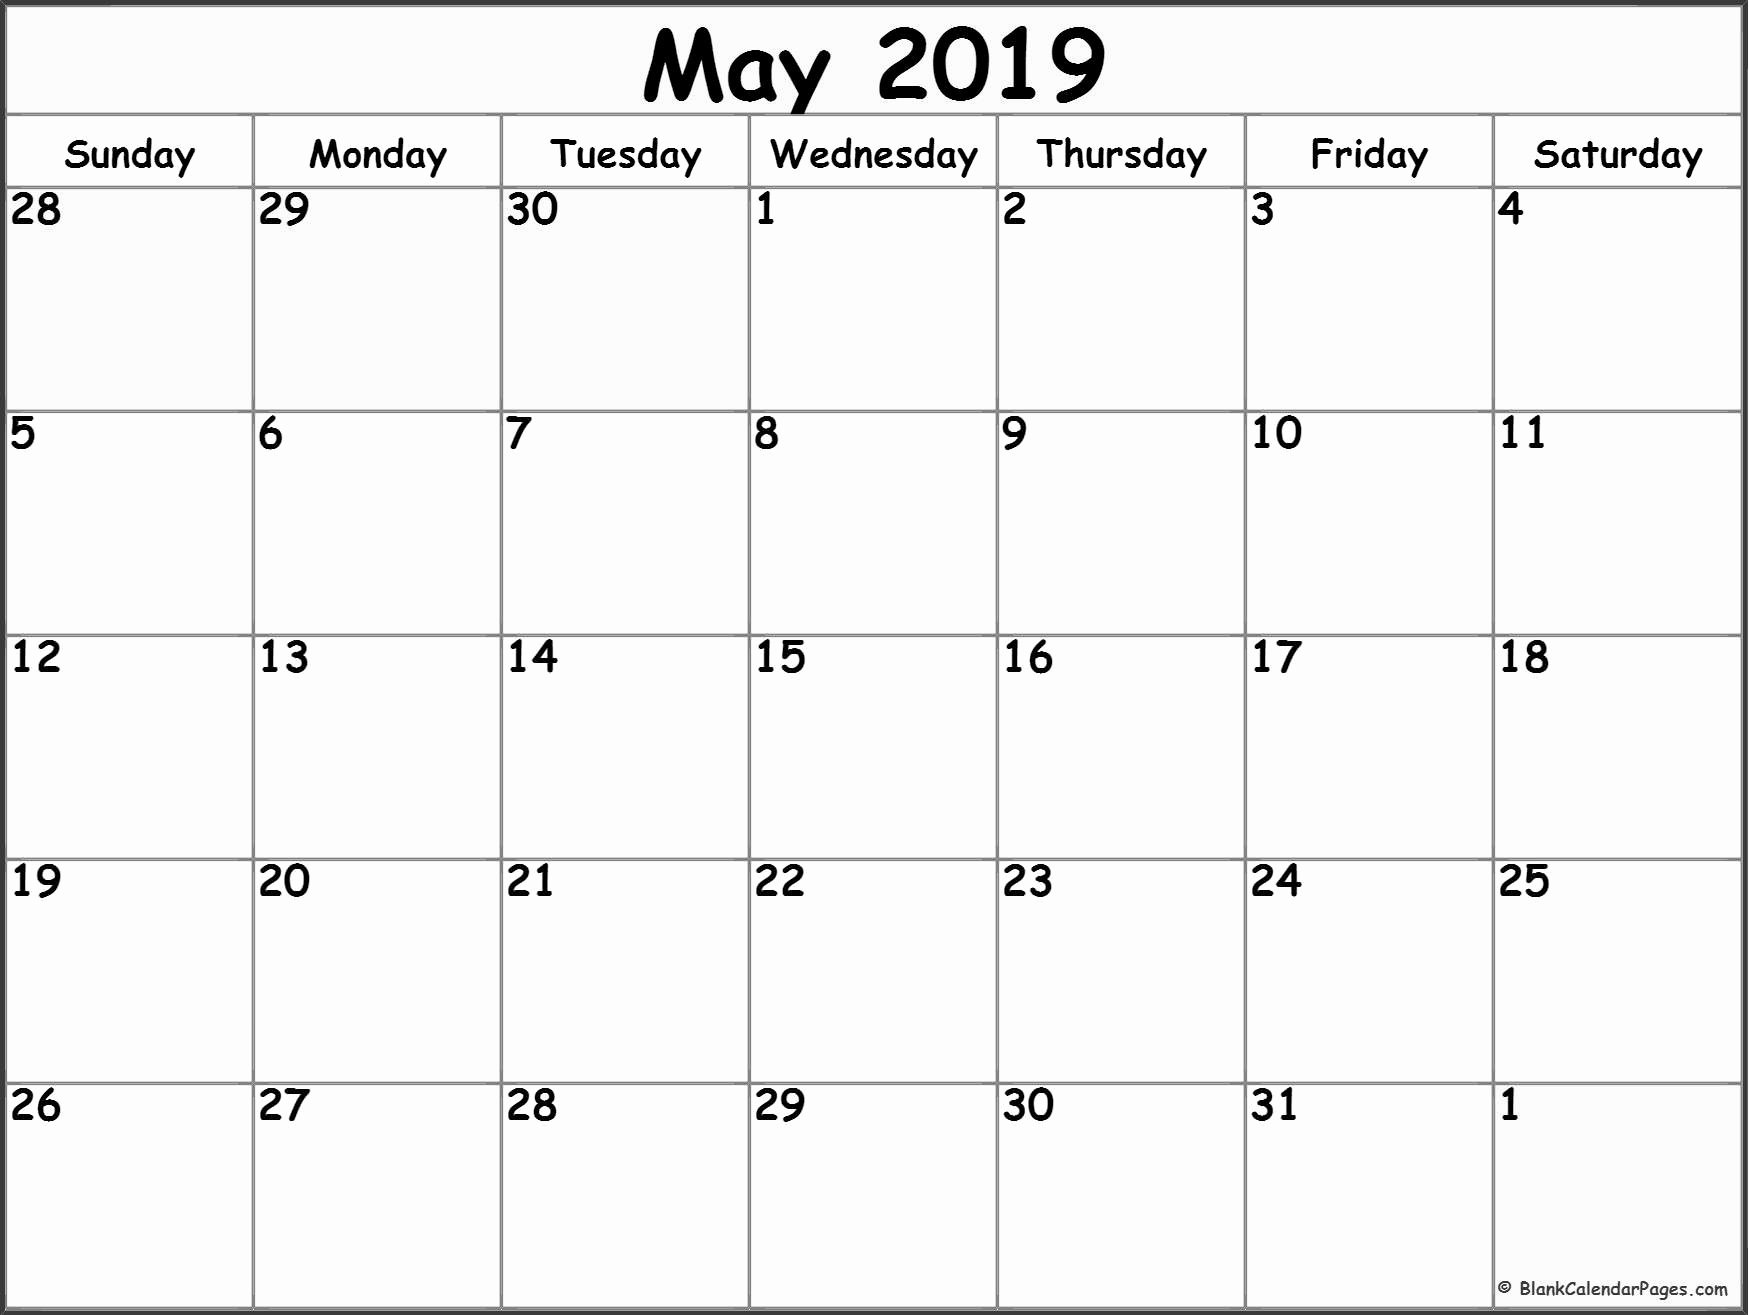 Monthly Calendar Template 2019 Elegant May 2019 Blank Calendar Templates